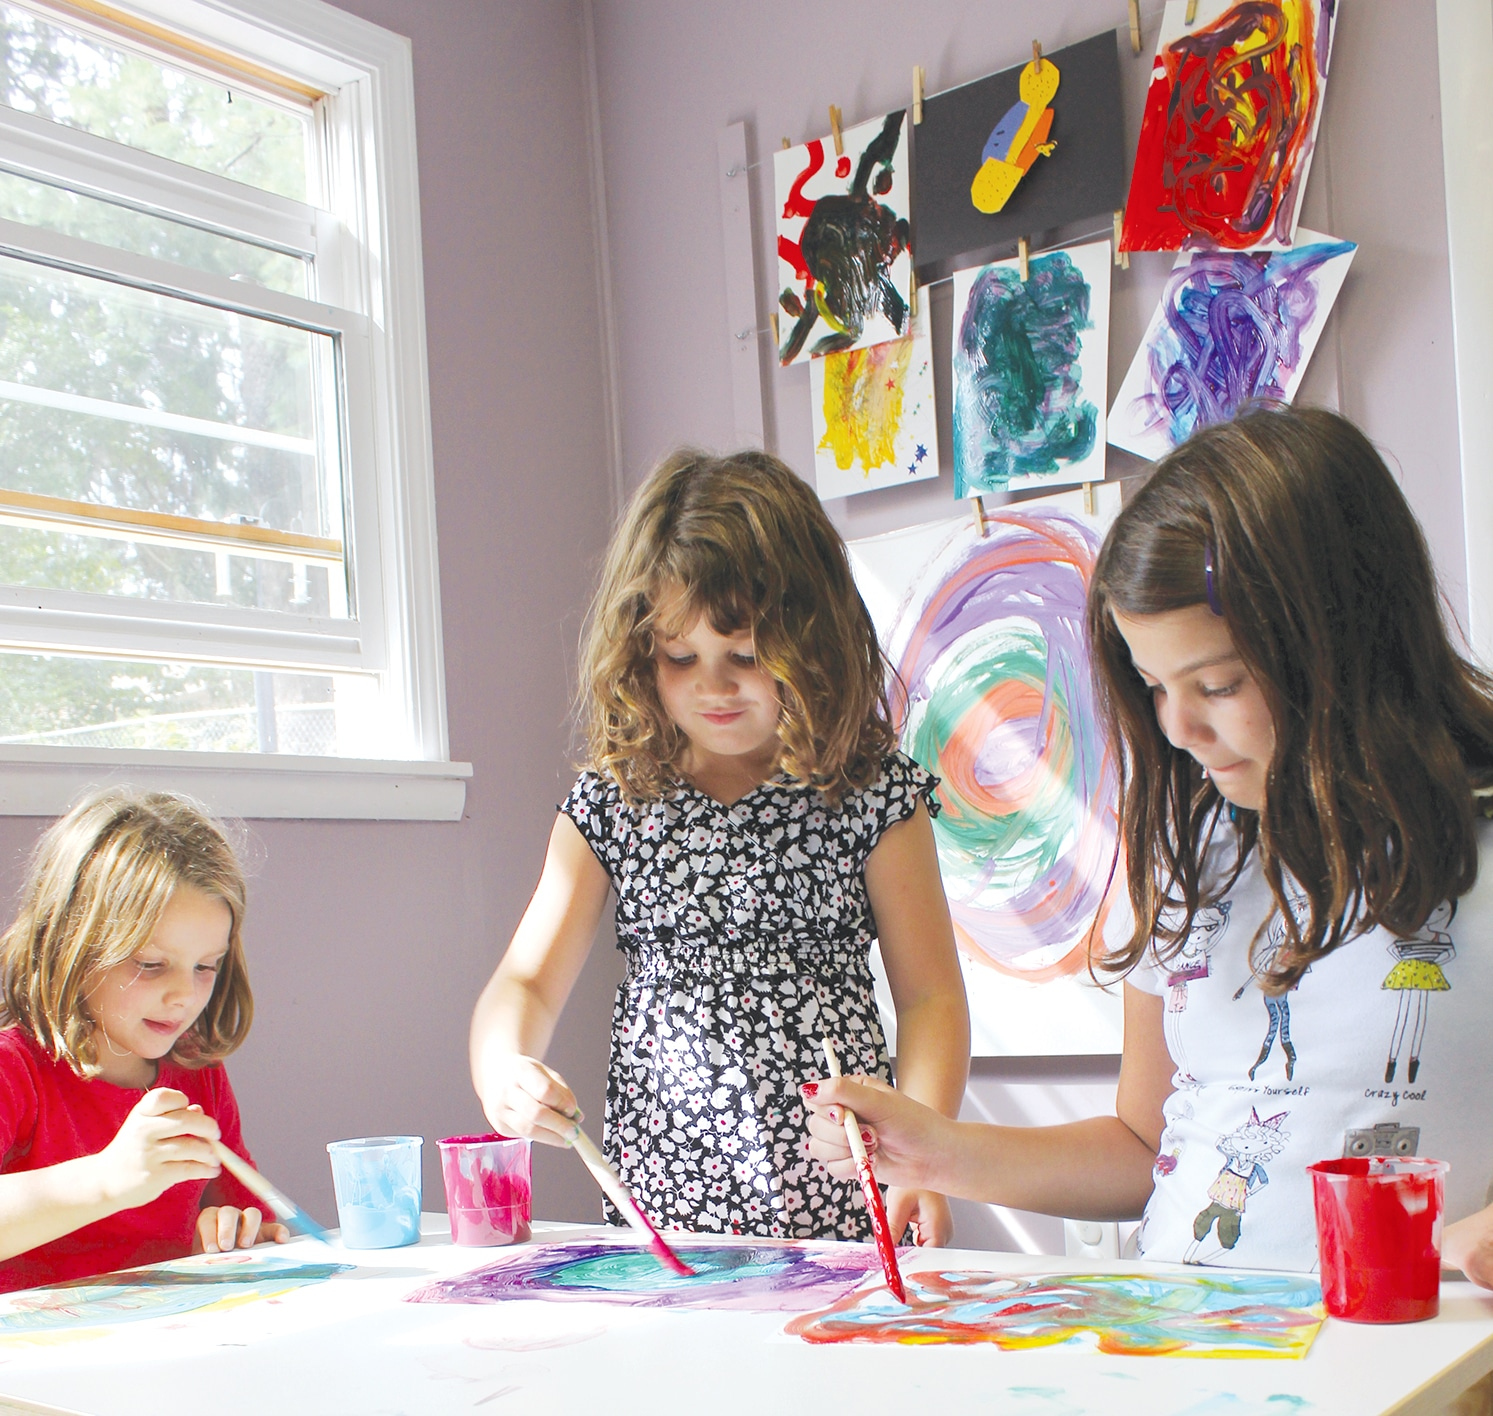 Girls painting at table with art hanging in background.